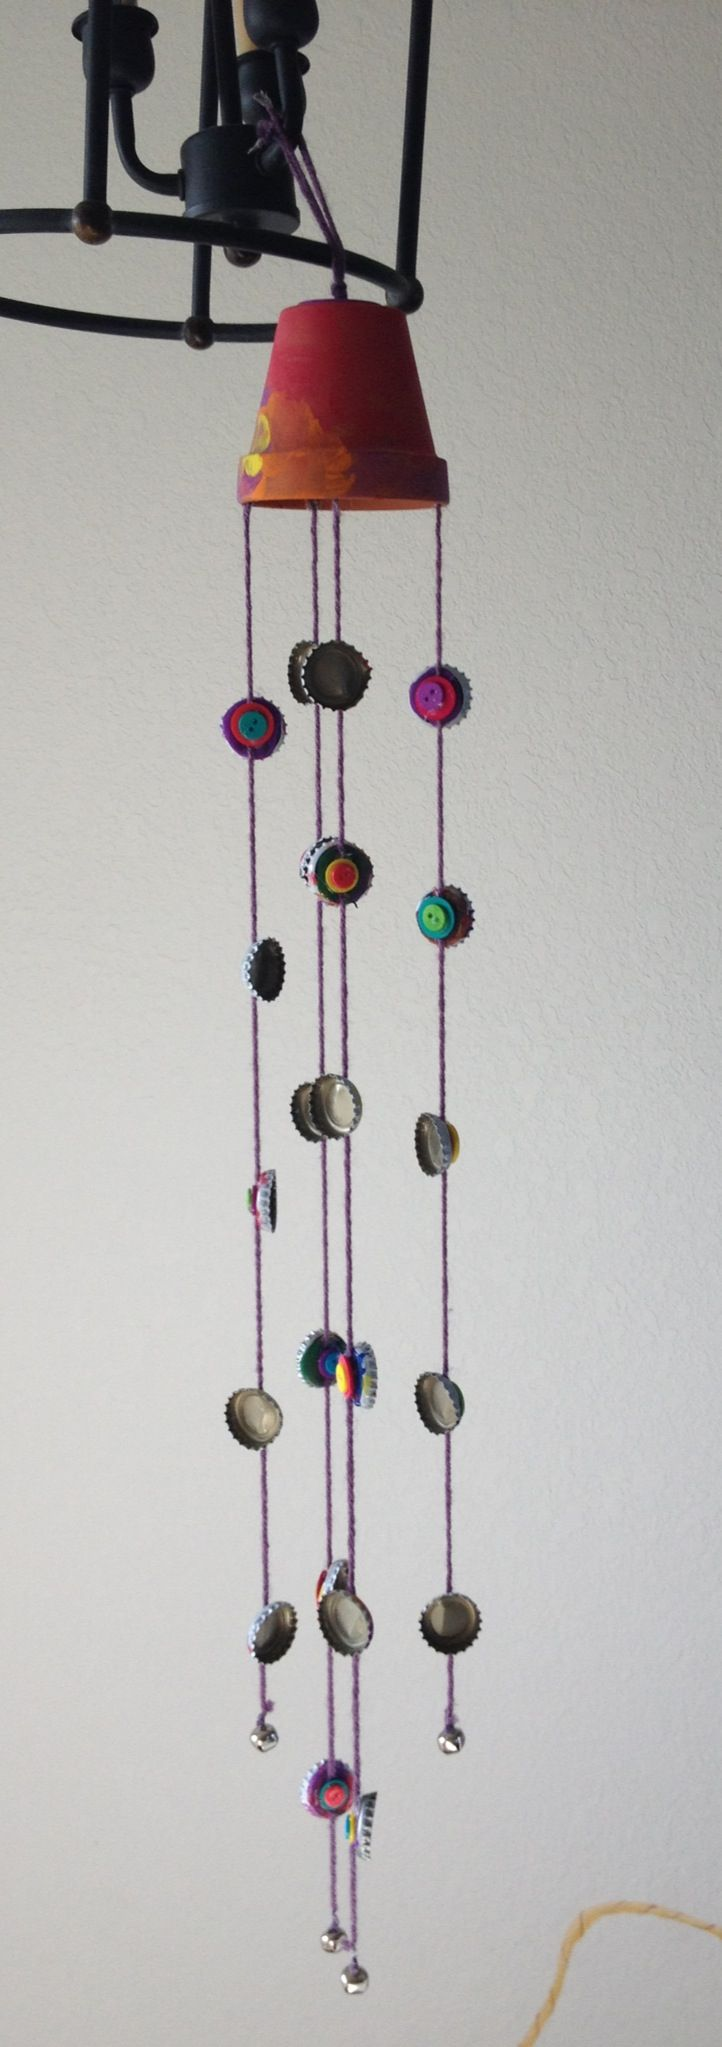 Homemade wind chime easy fun project to do with kids for Wind chime craft projects